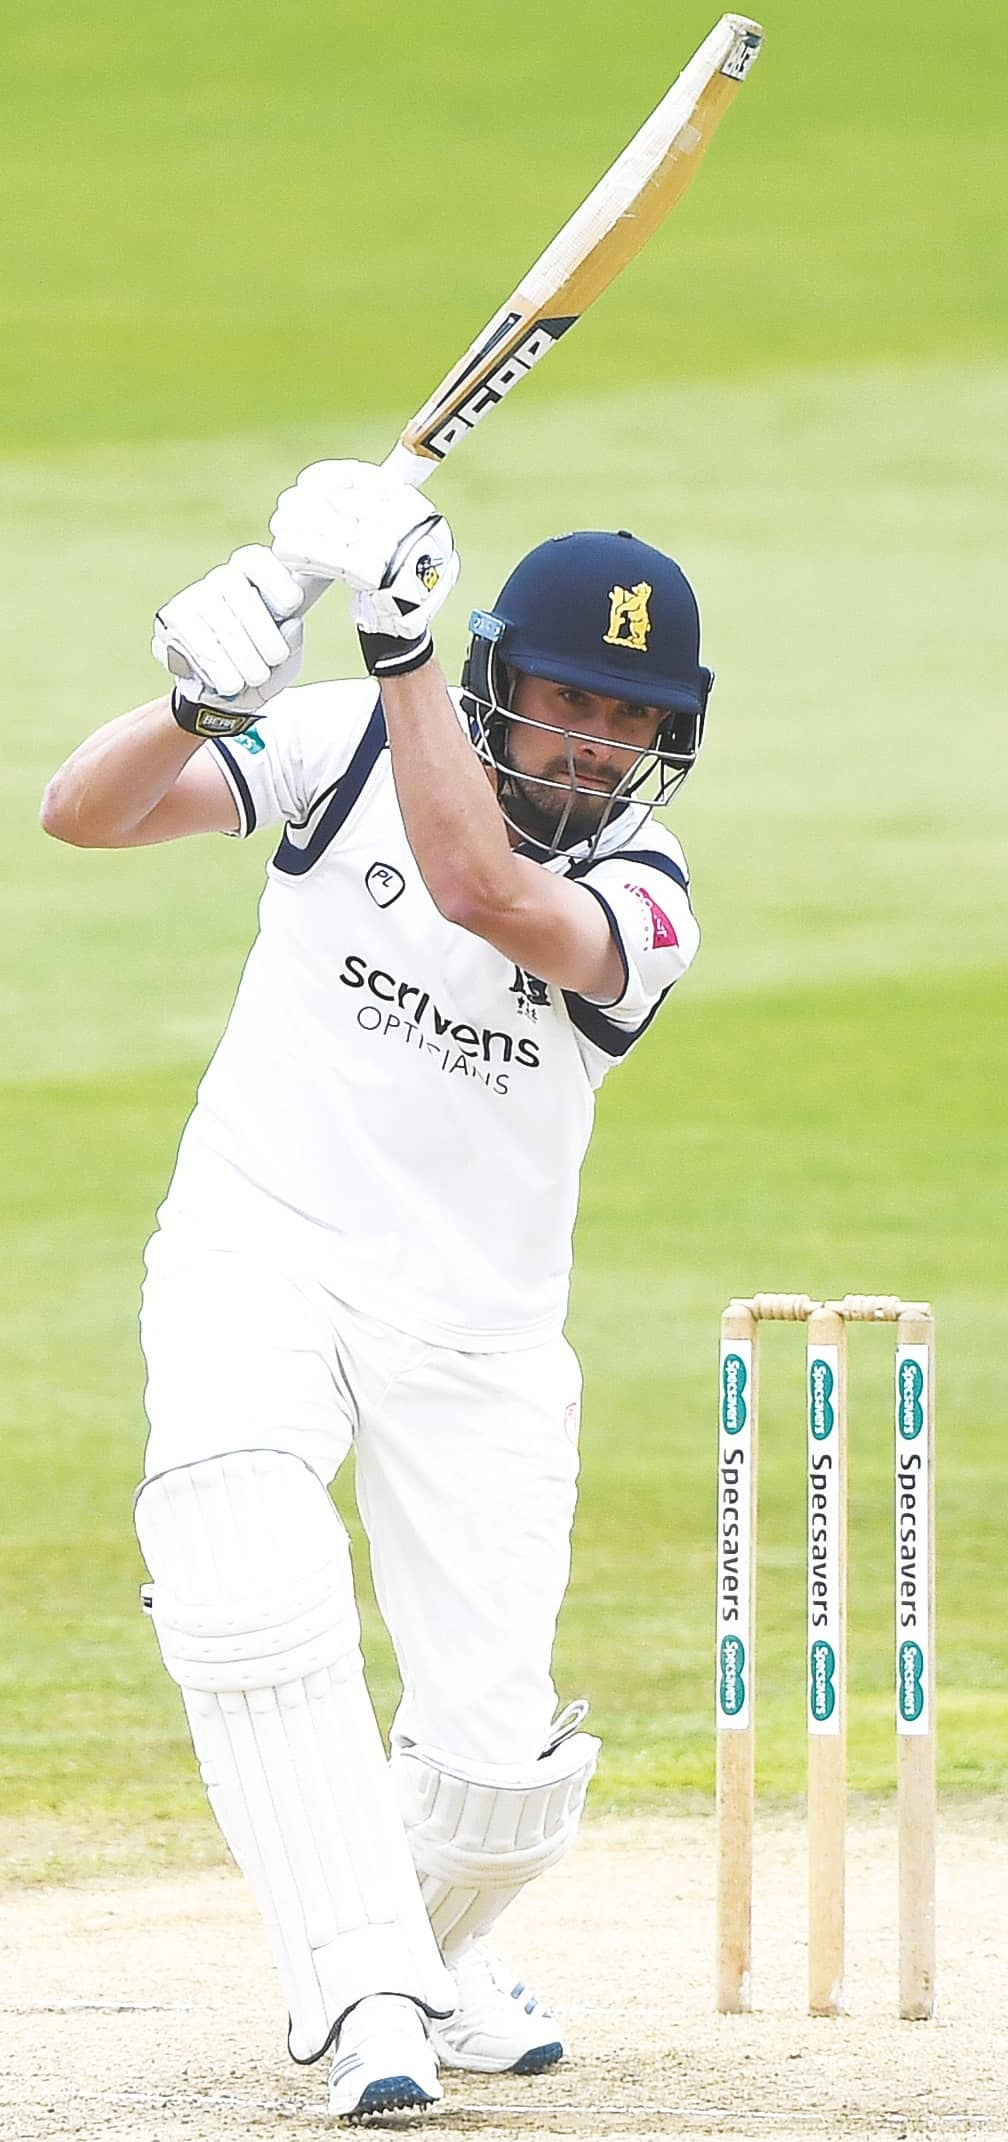 Bears Aim To Stop Essex And Boost Survival Bid